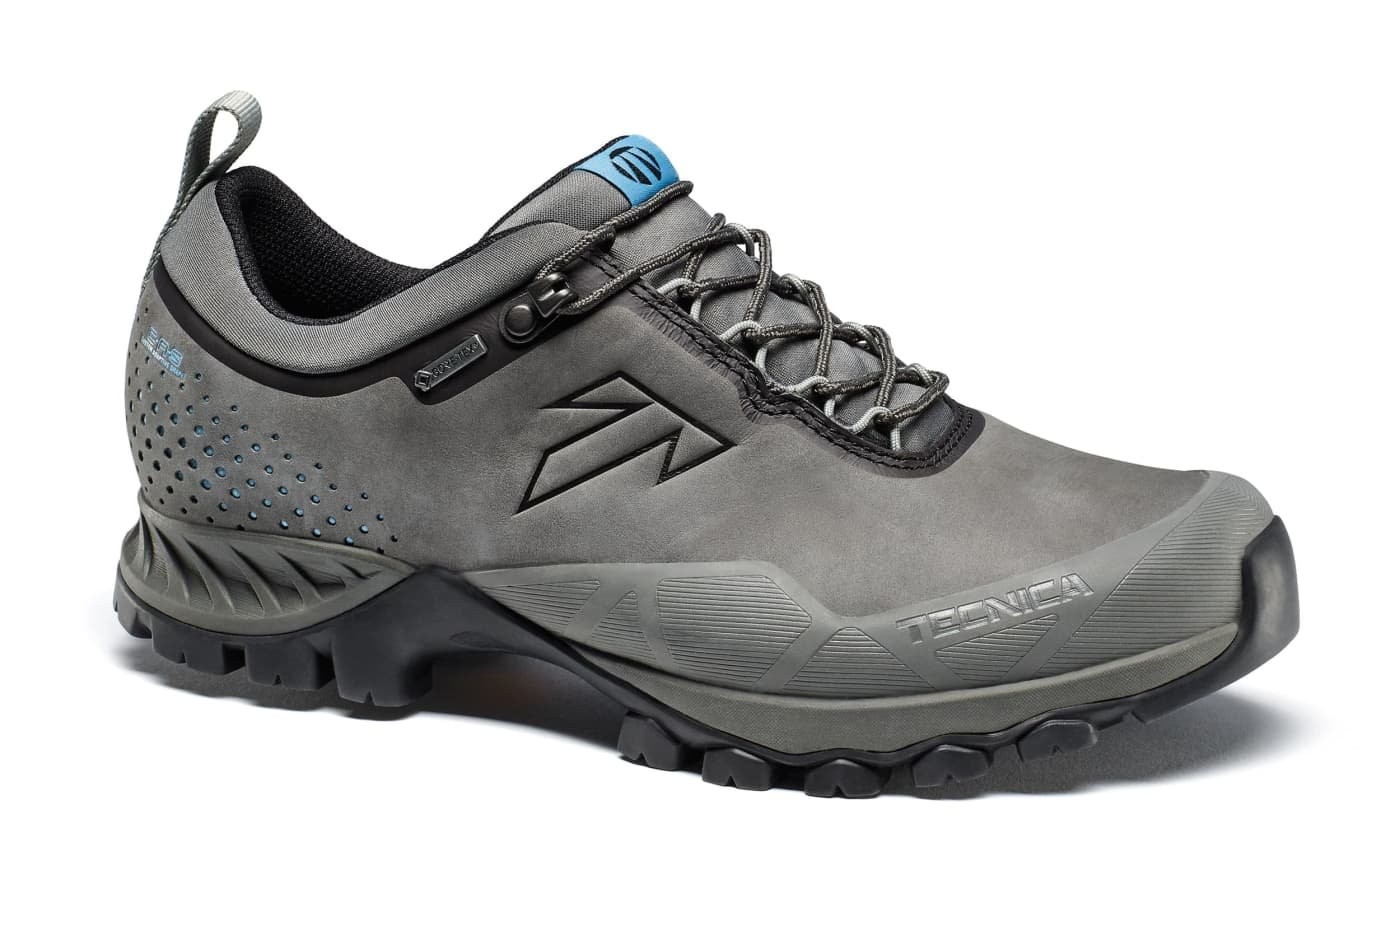 Tecnica Plasma GTX WS Hiking Shoe- Altura (gray)